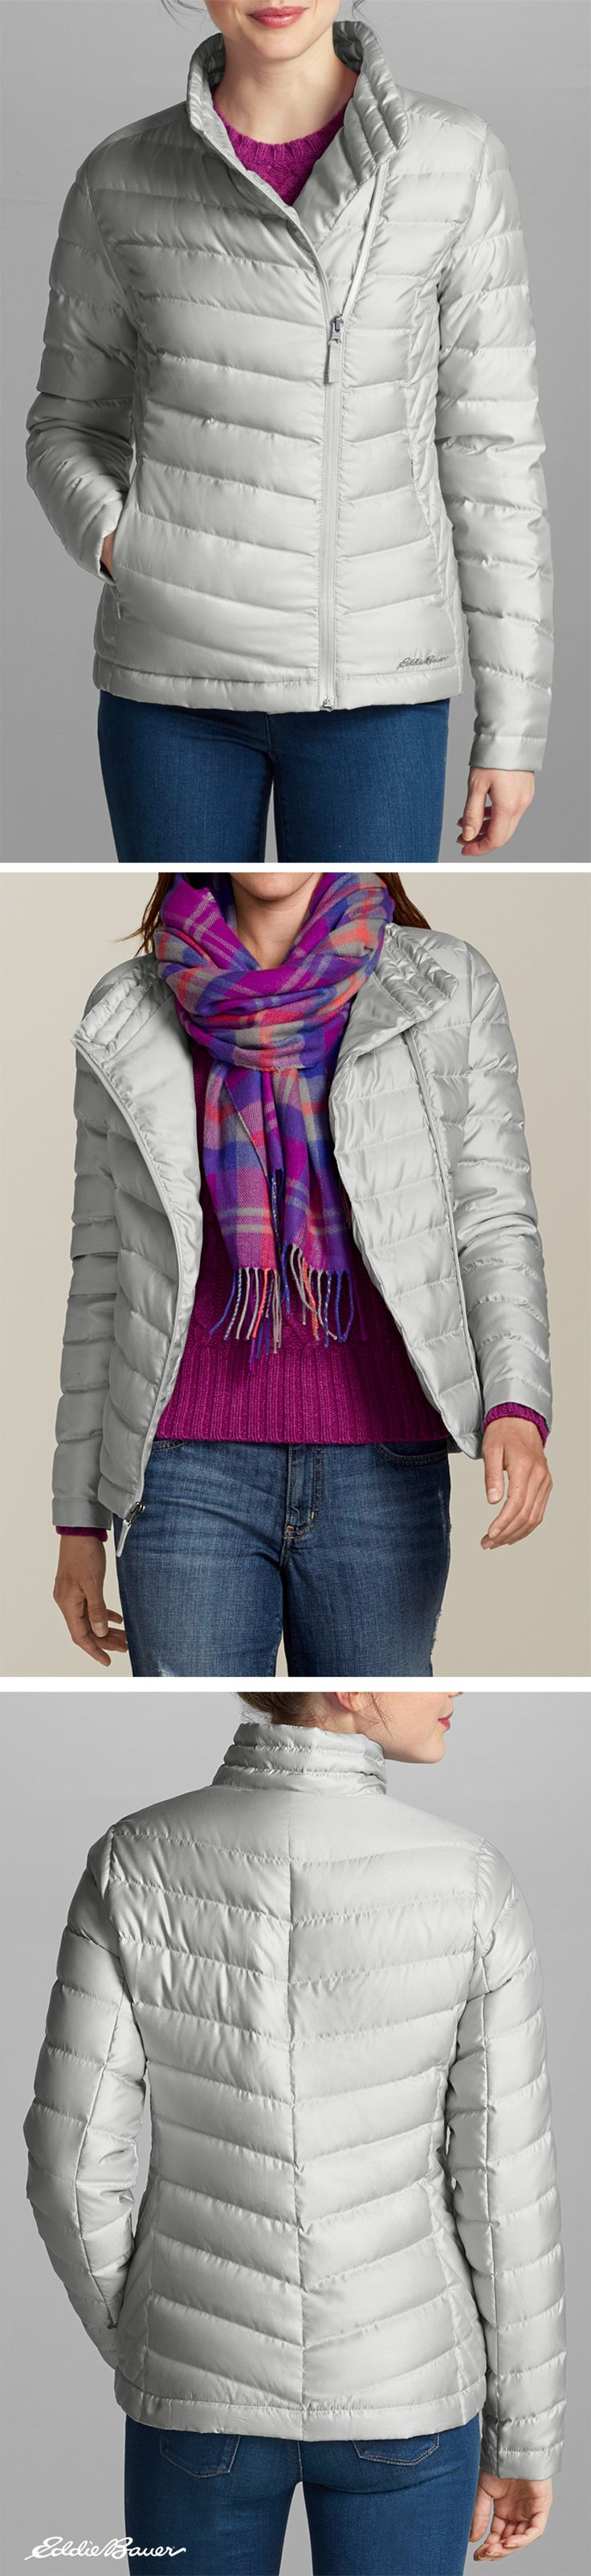 83 best Warm Parkas & Jackets for Cold Weather images on Pinterest ...